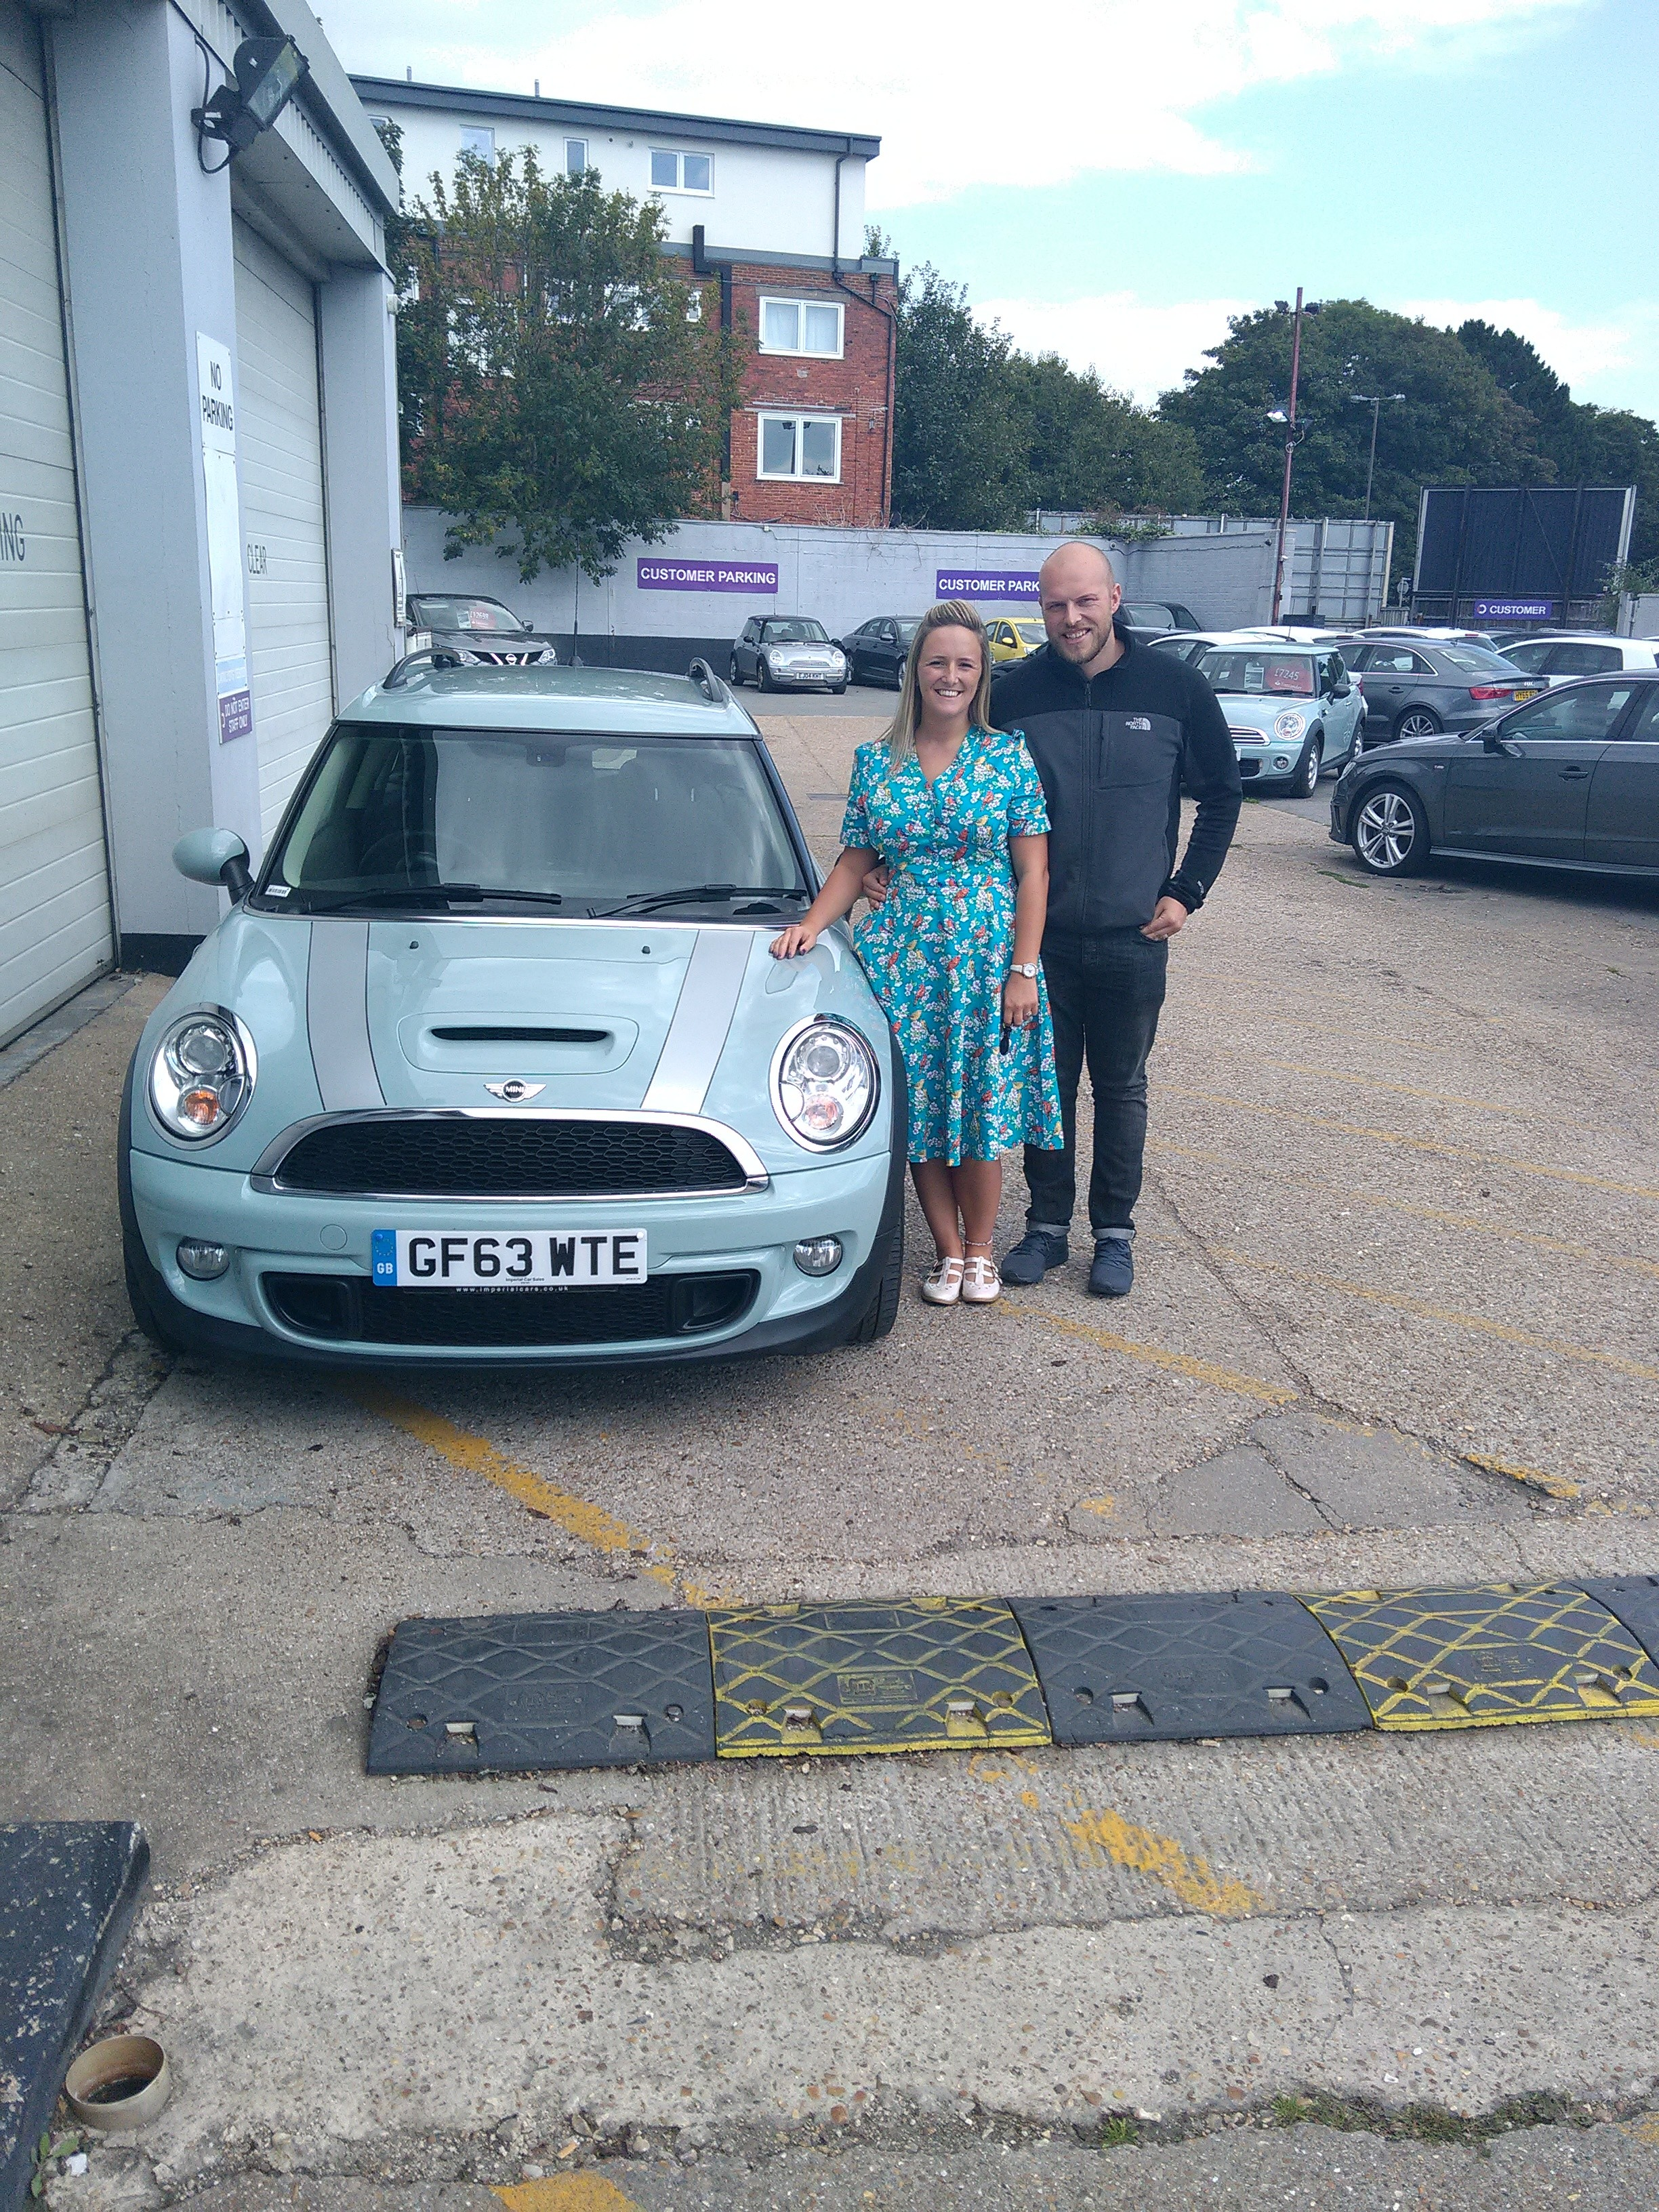 Used Mini Clubman For Sale Second Hand Clubman Finance Deals Uk